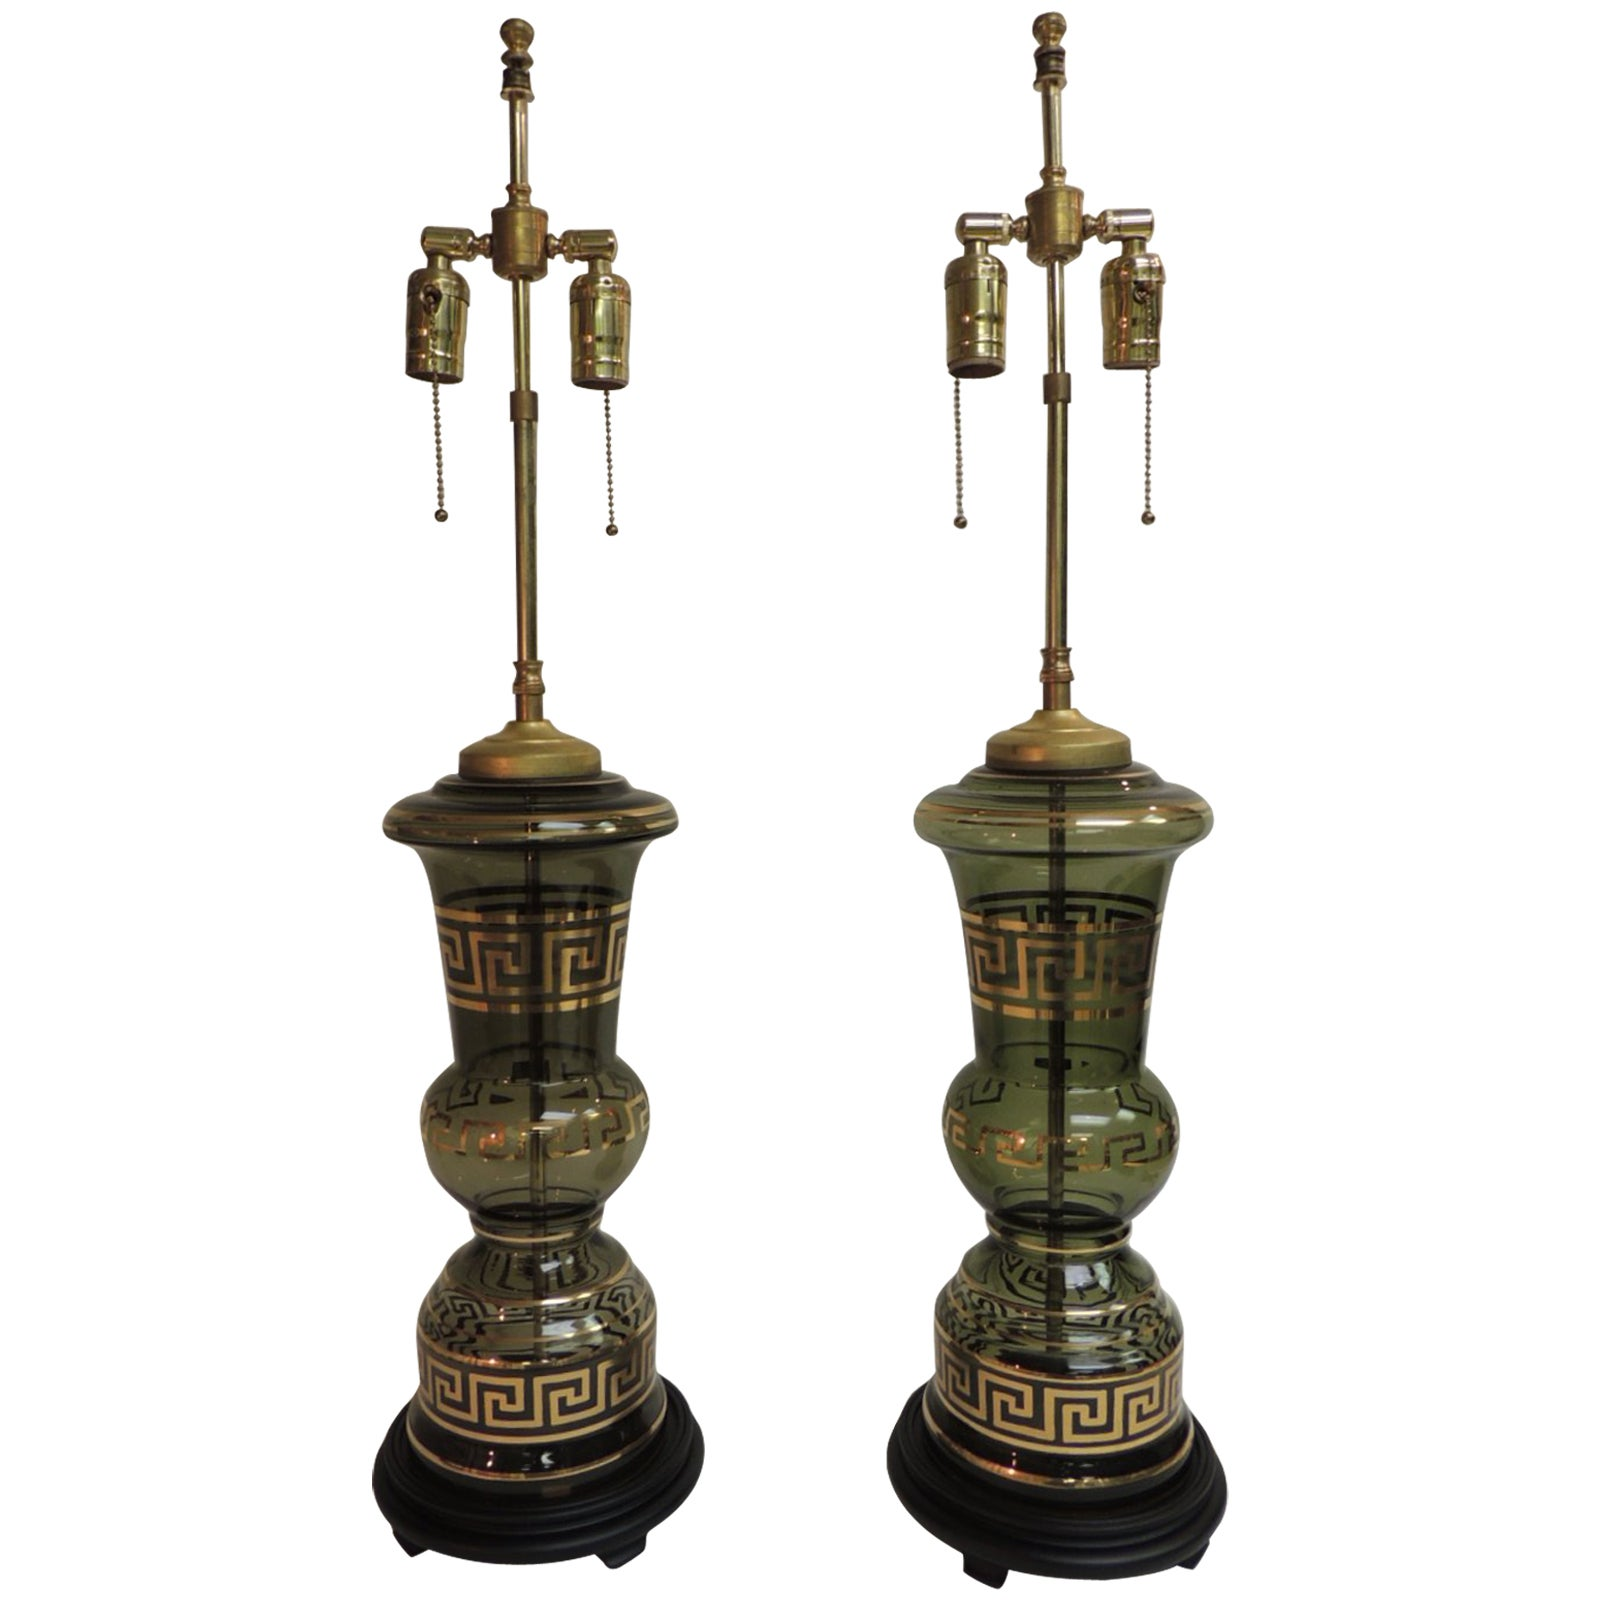 Pair of Antique Hand Blown Glass Lamps with Gold Greek Key Border